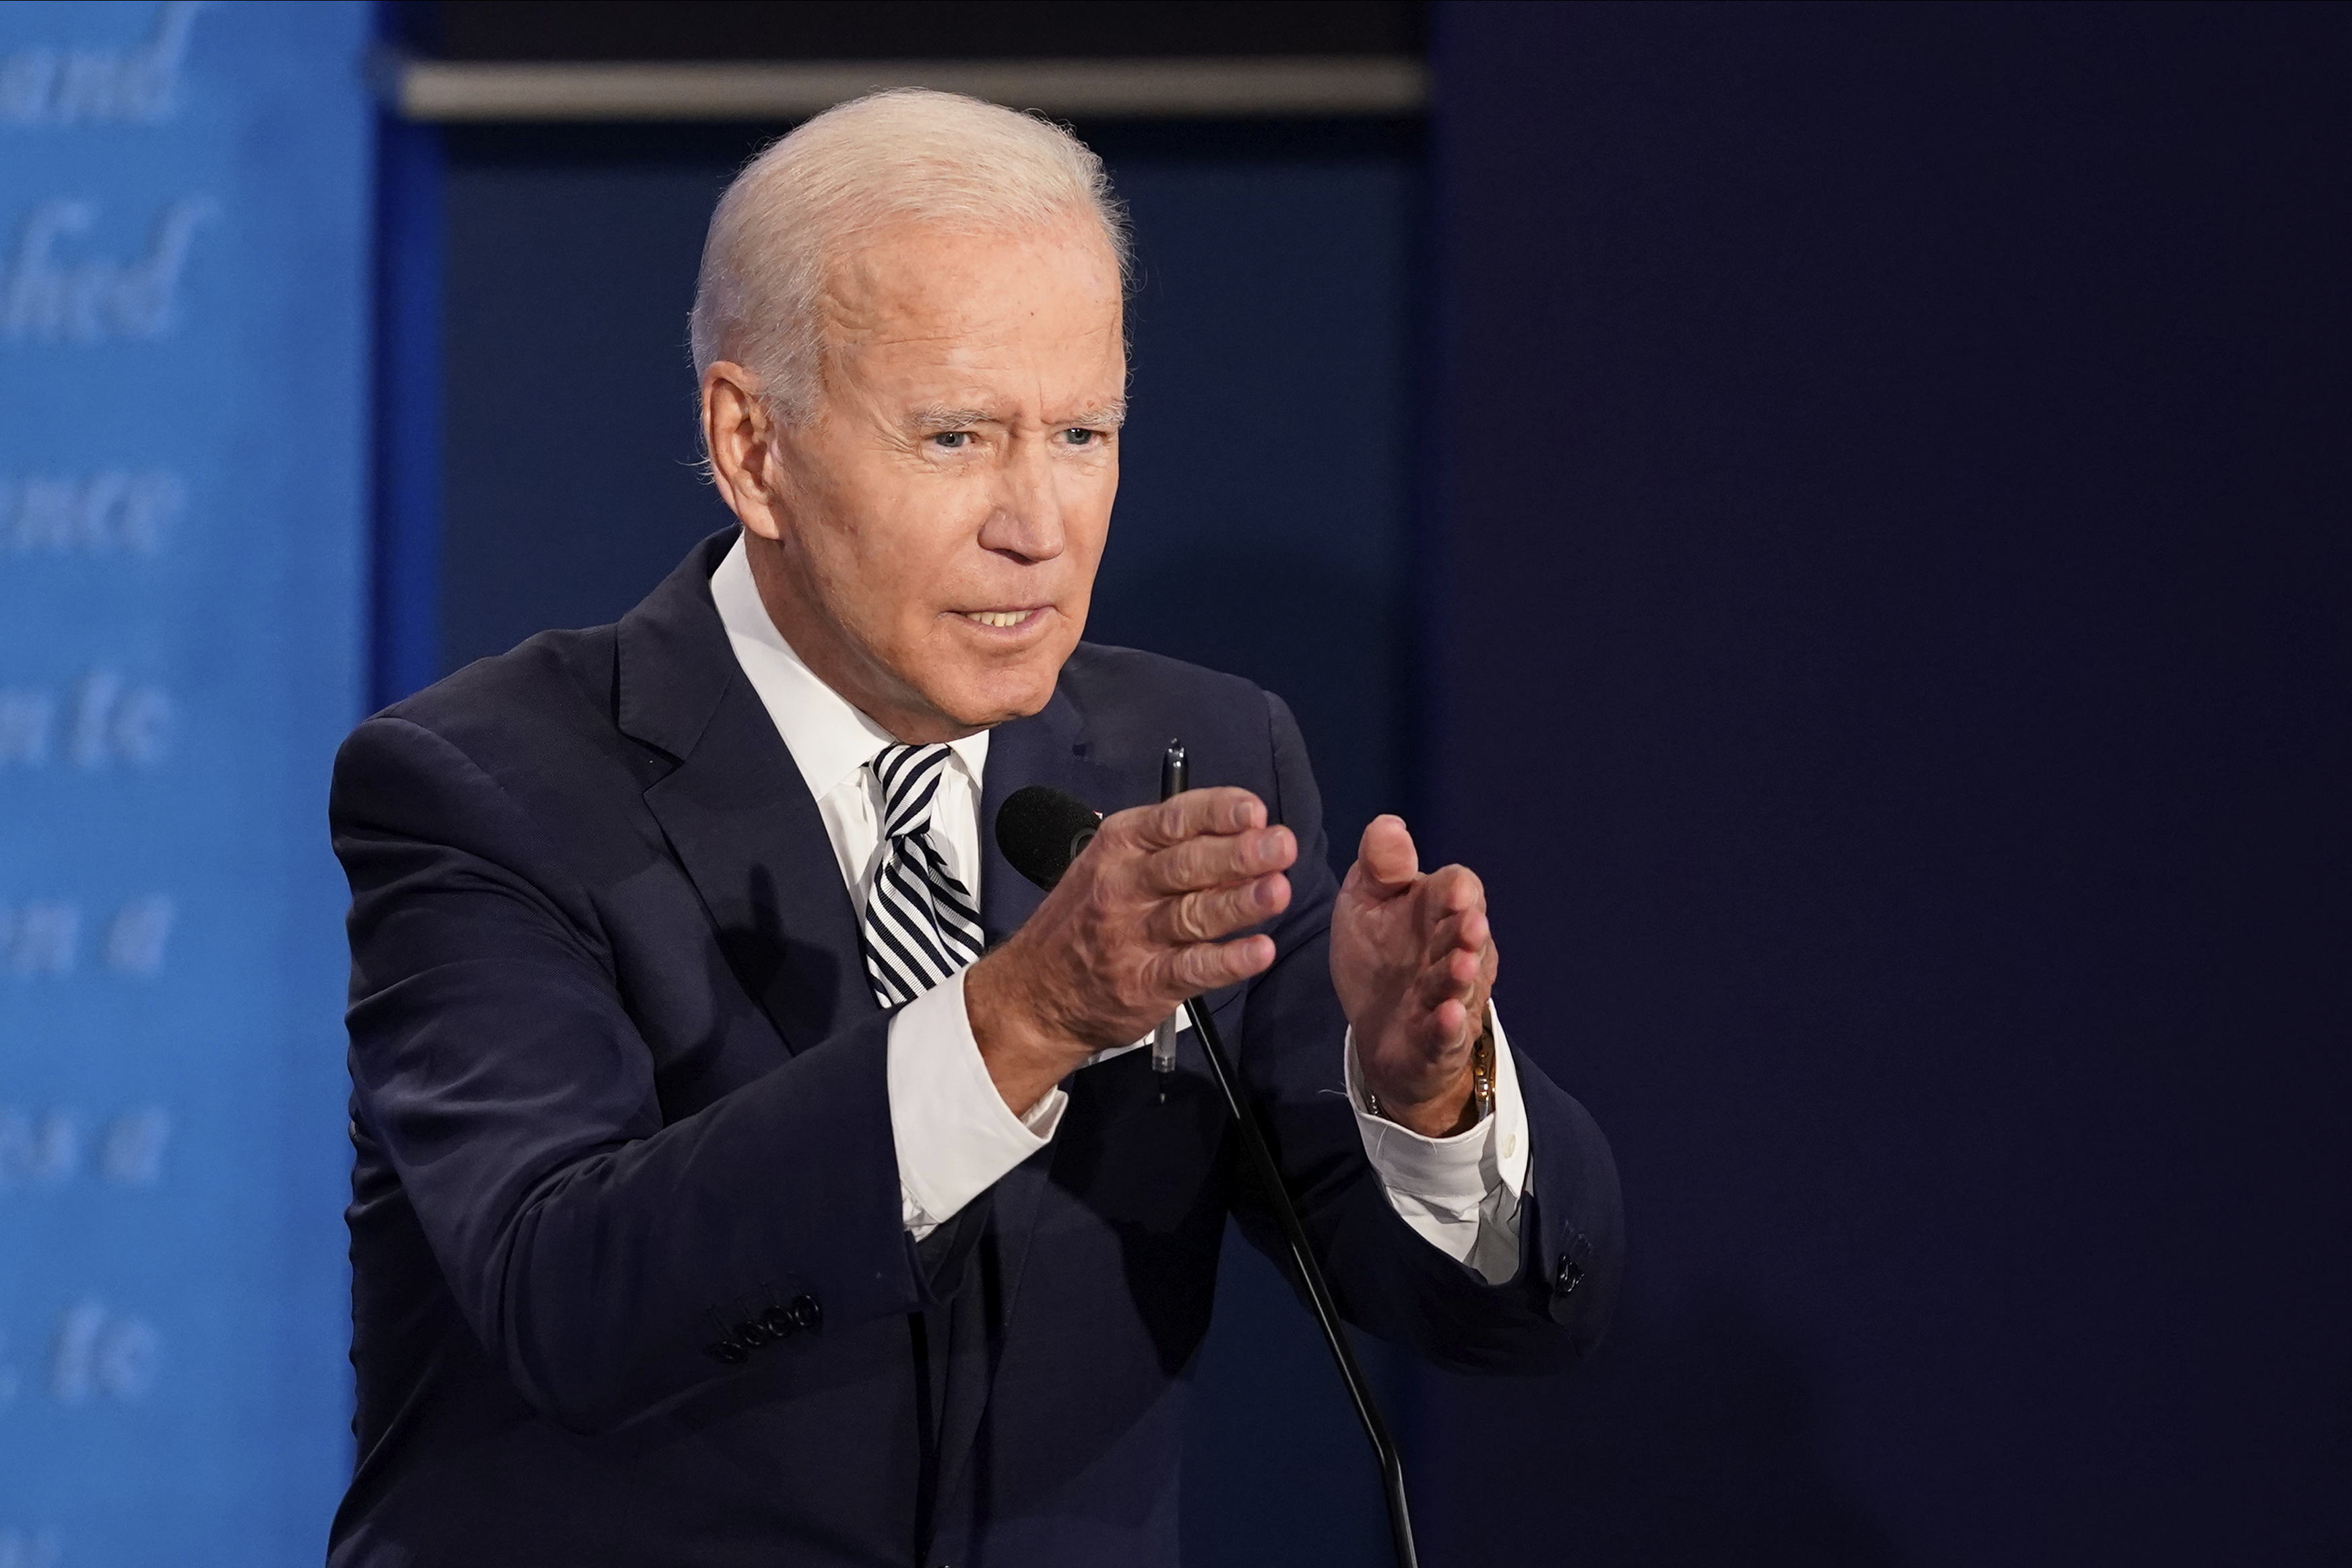 Democratic presidential candidate former Vice President Joe Biden speaks during the first presidential debate against President Donald Trump, Tuesday, Sept. 29, 2020, at Case Western University and Cleveland Clinic, in Cleveland, Ohio. (AP Photo/Morry Gash, Pool)